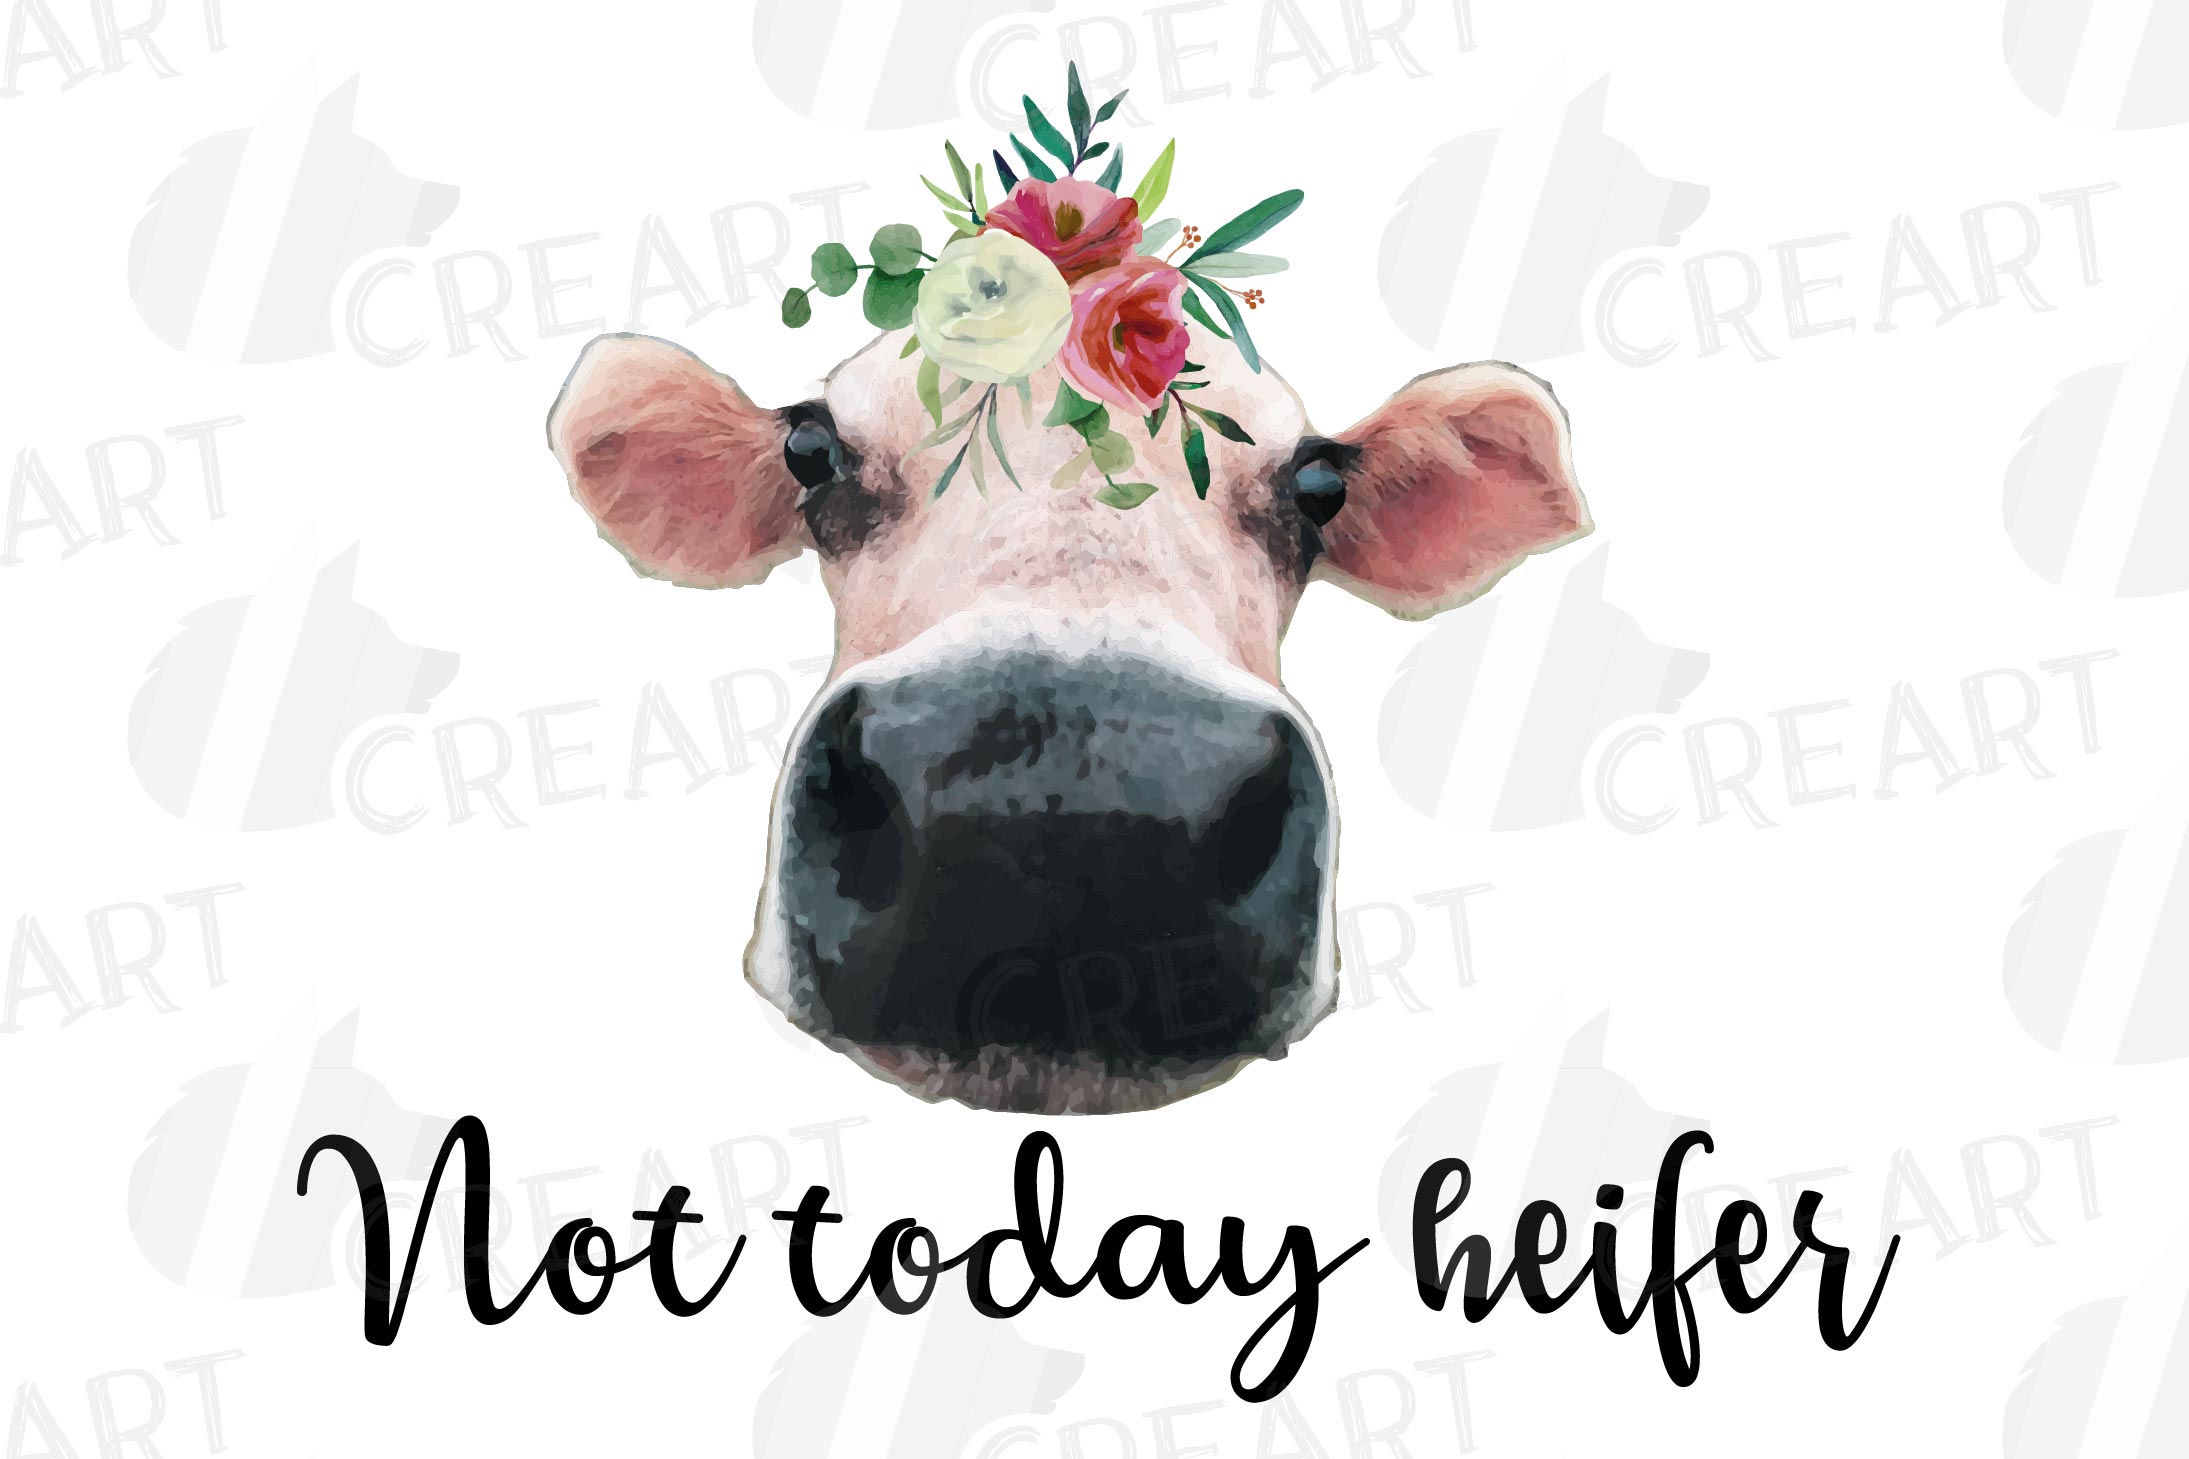 Cows with floral crown clip art. Not today heifer graphic example image 8